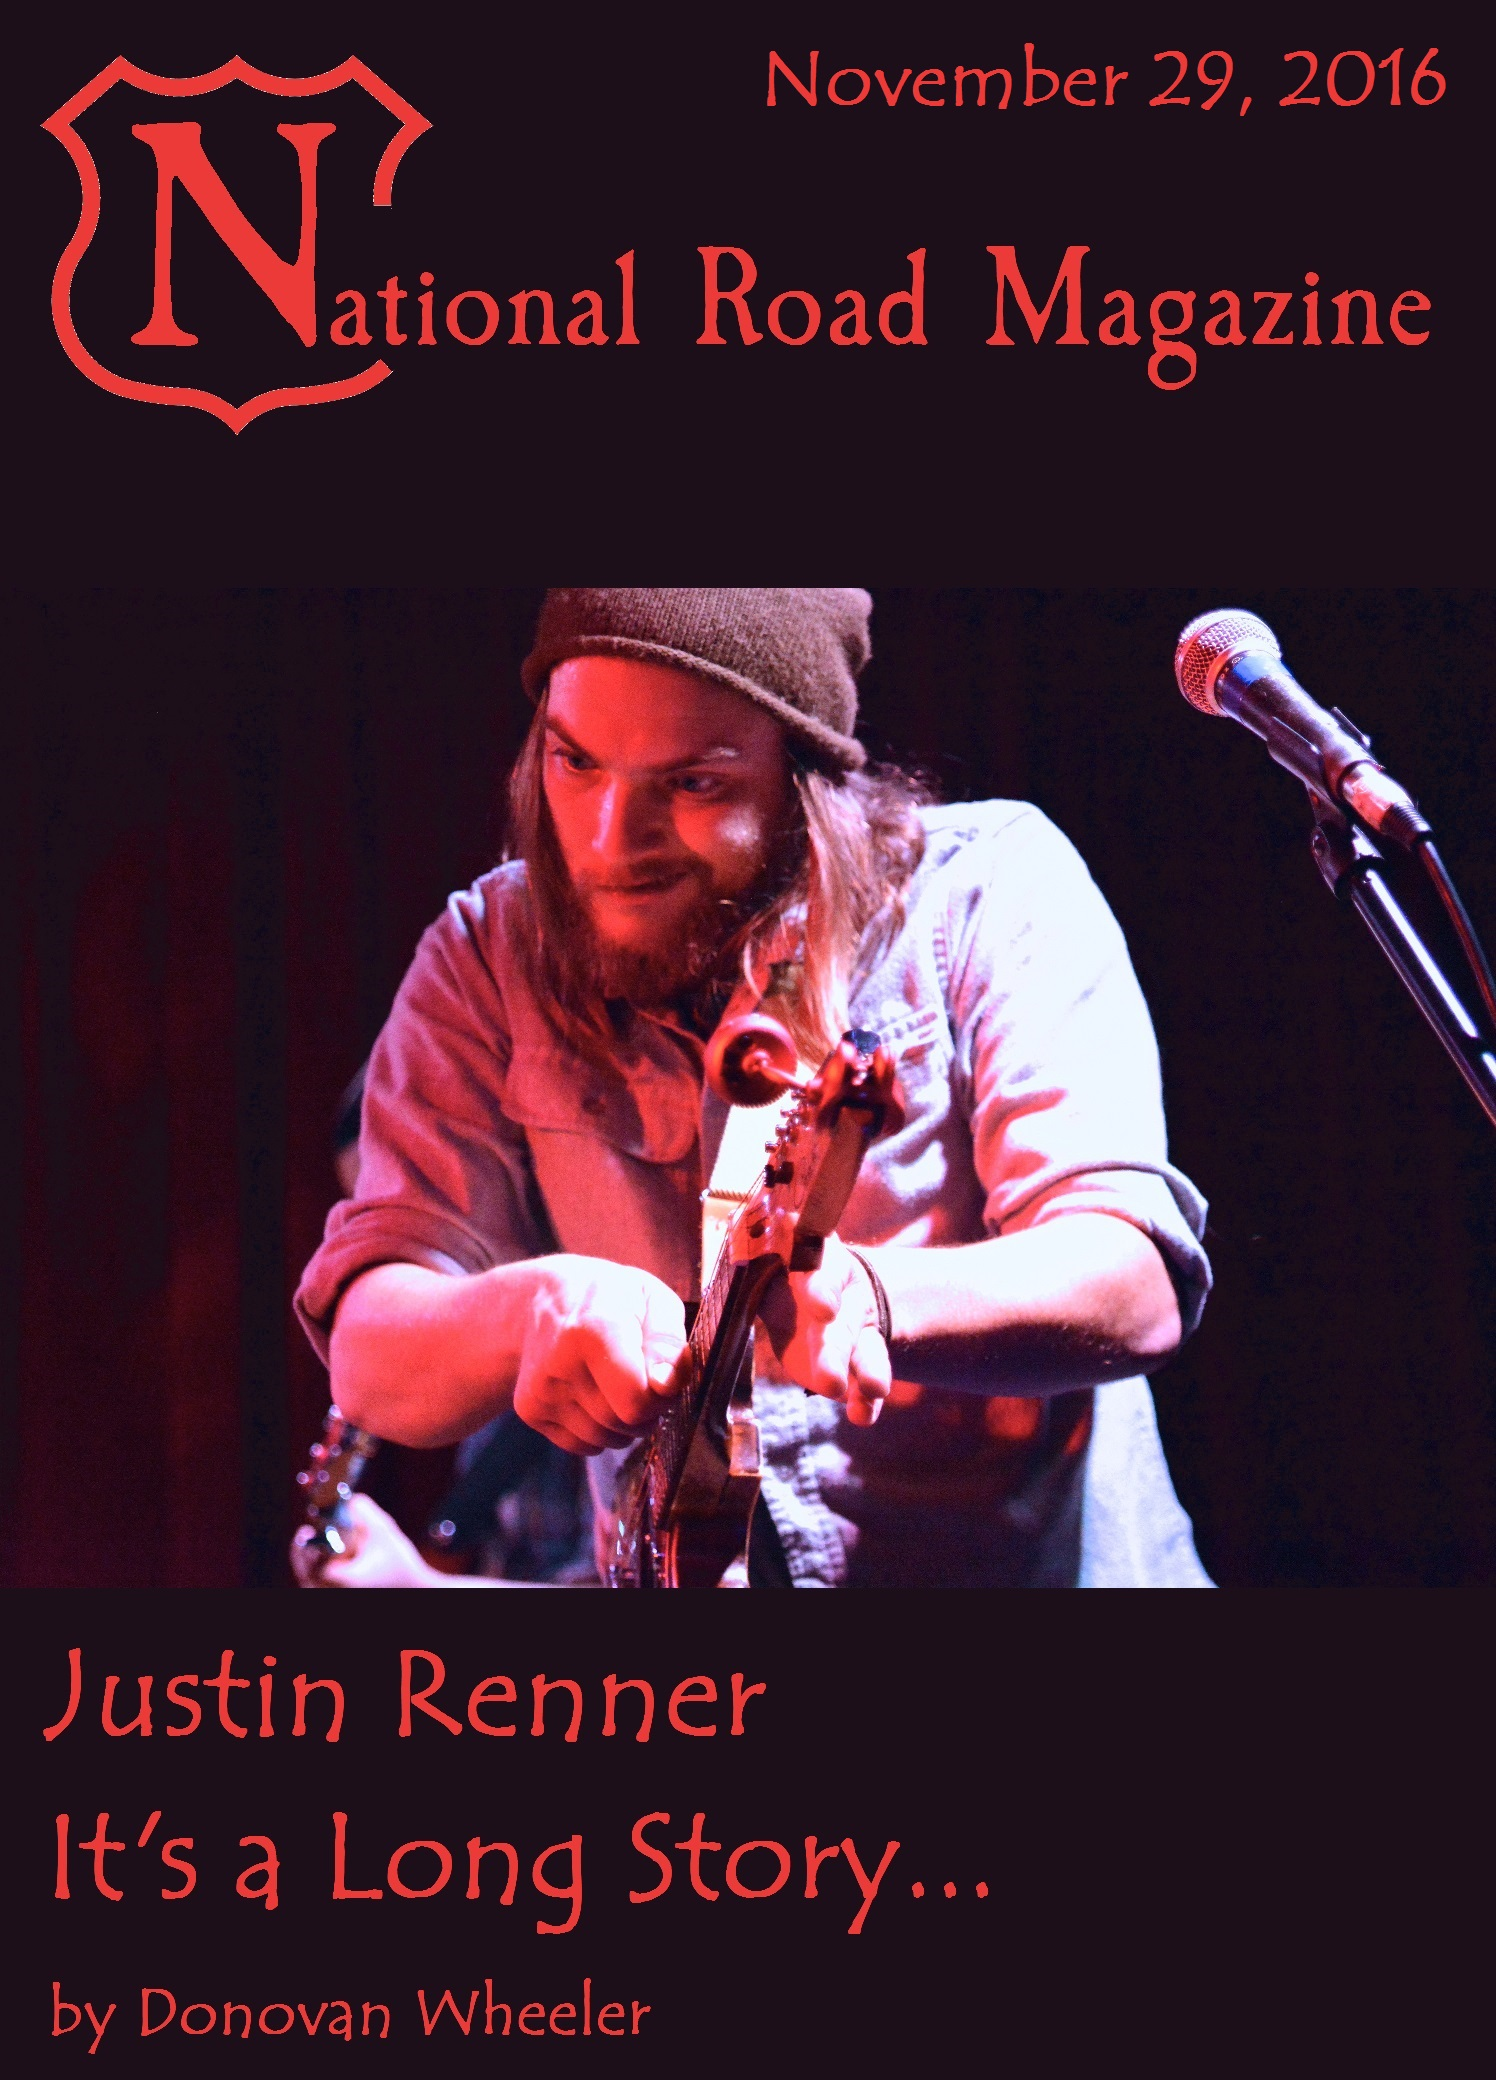 Cover Photo by Tim McLaughlin